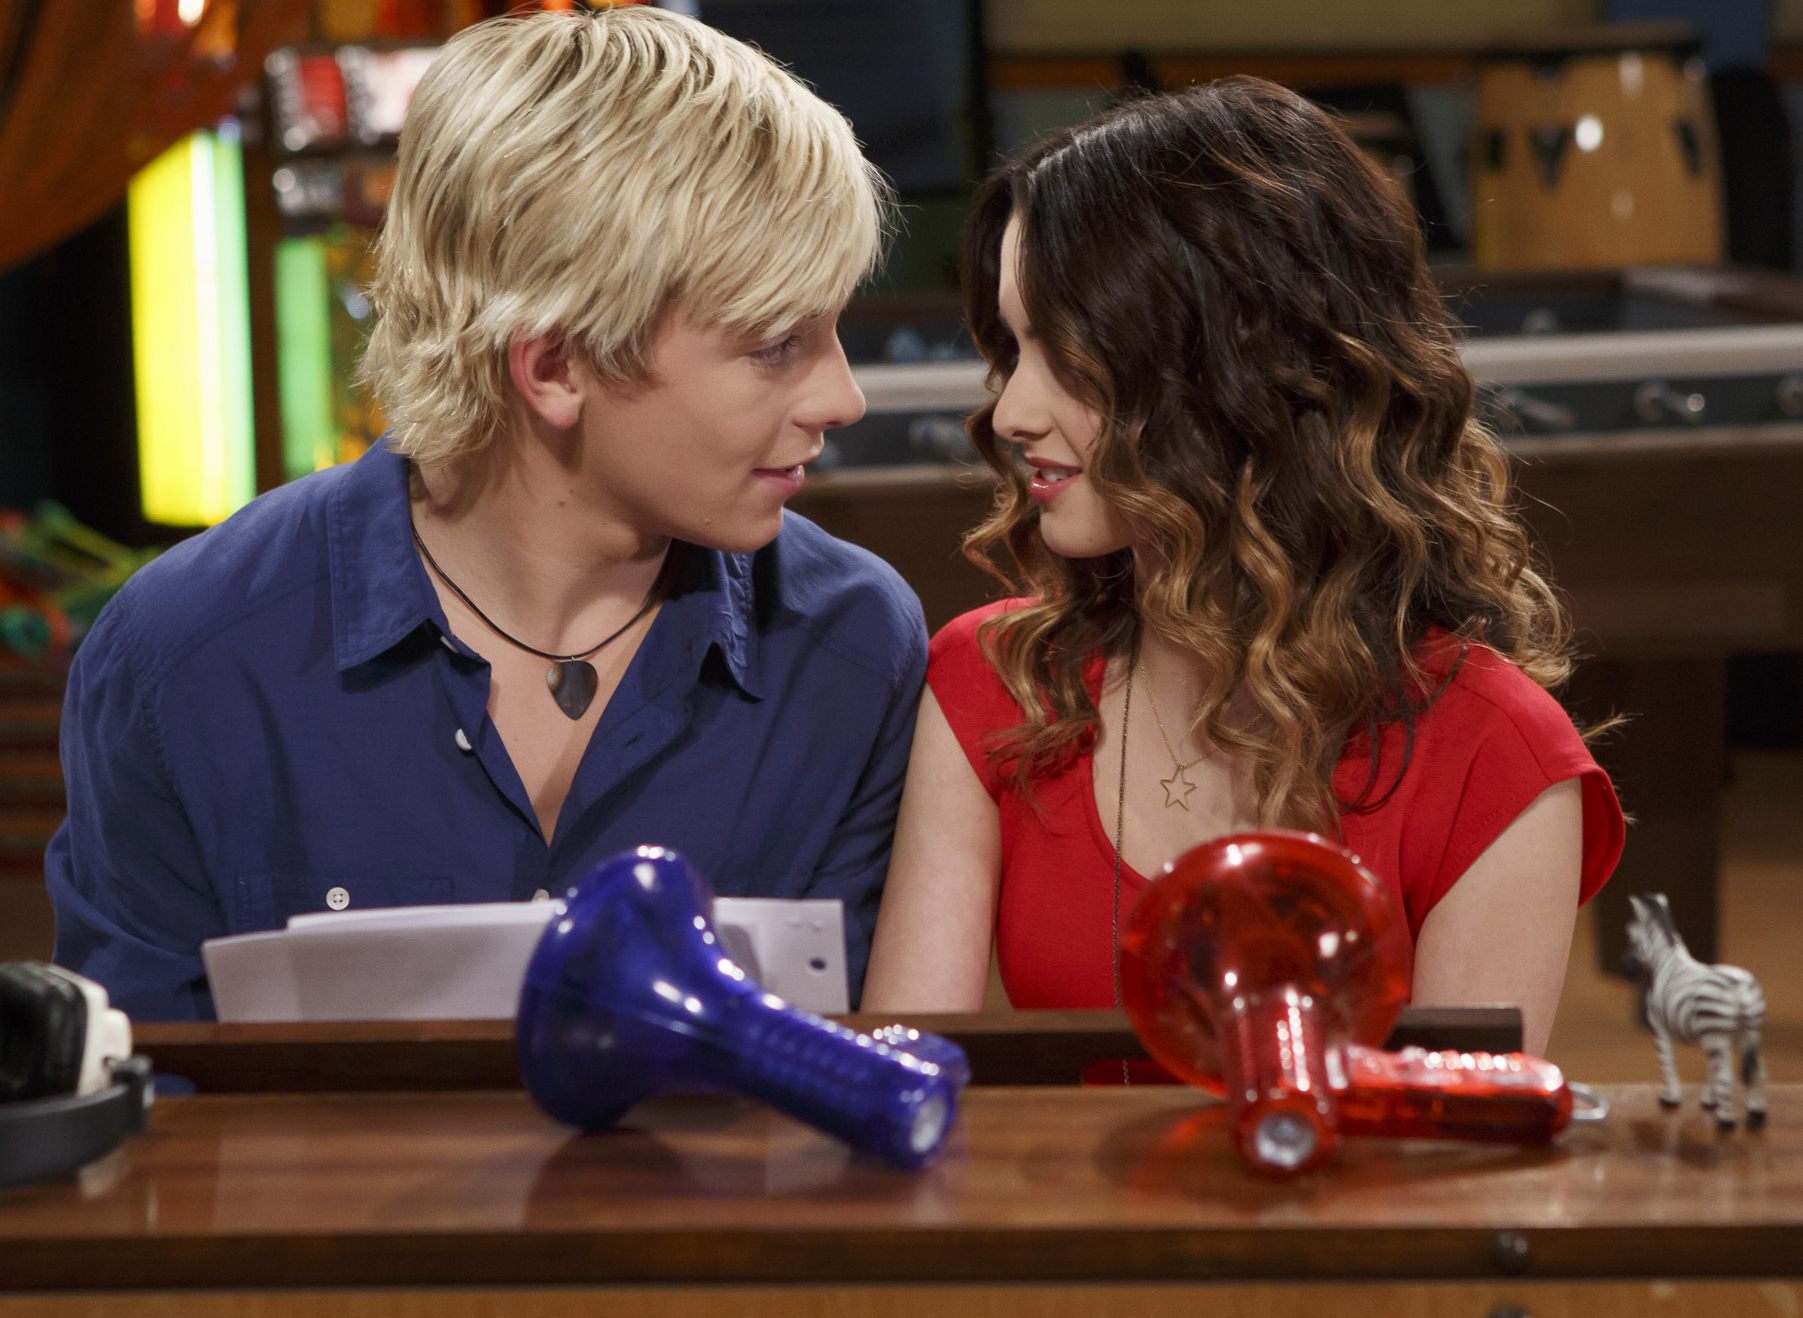 Who is laura from austin and ally dating